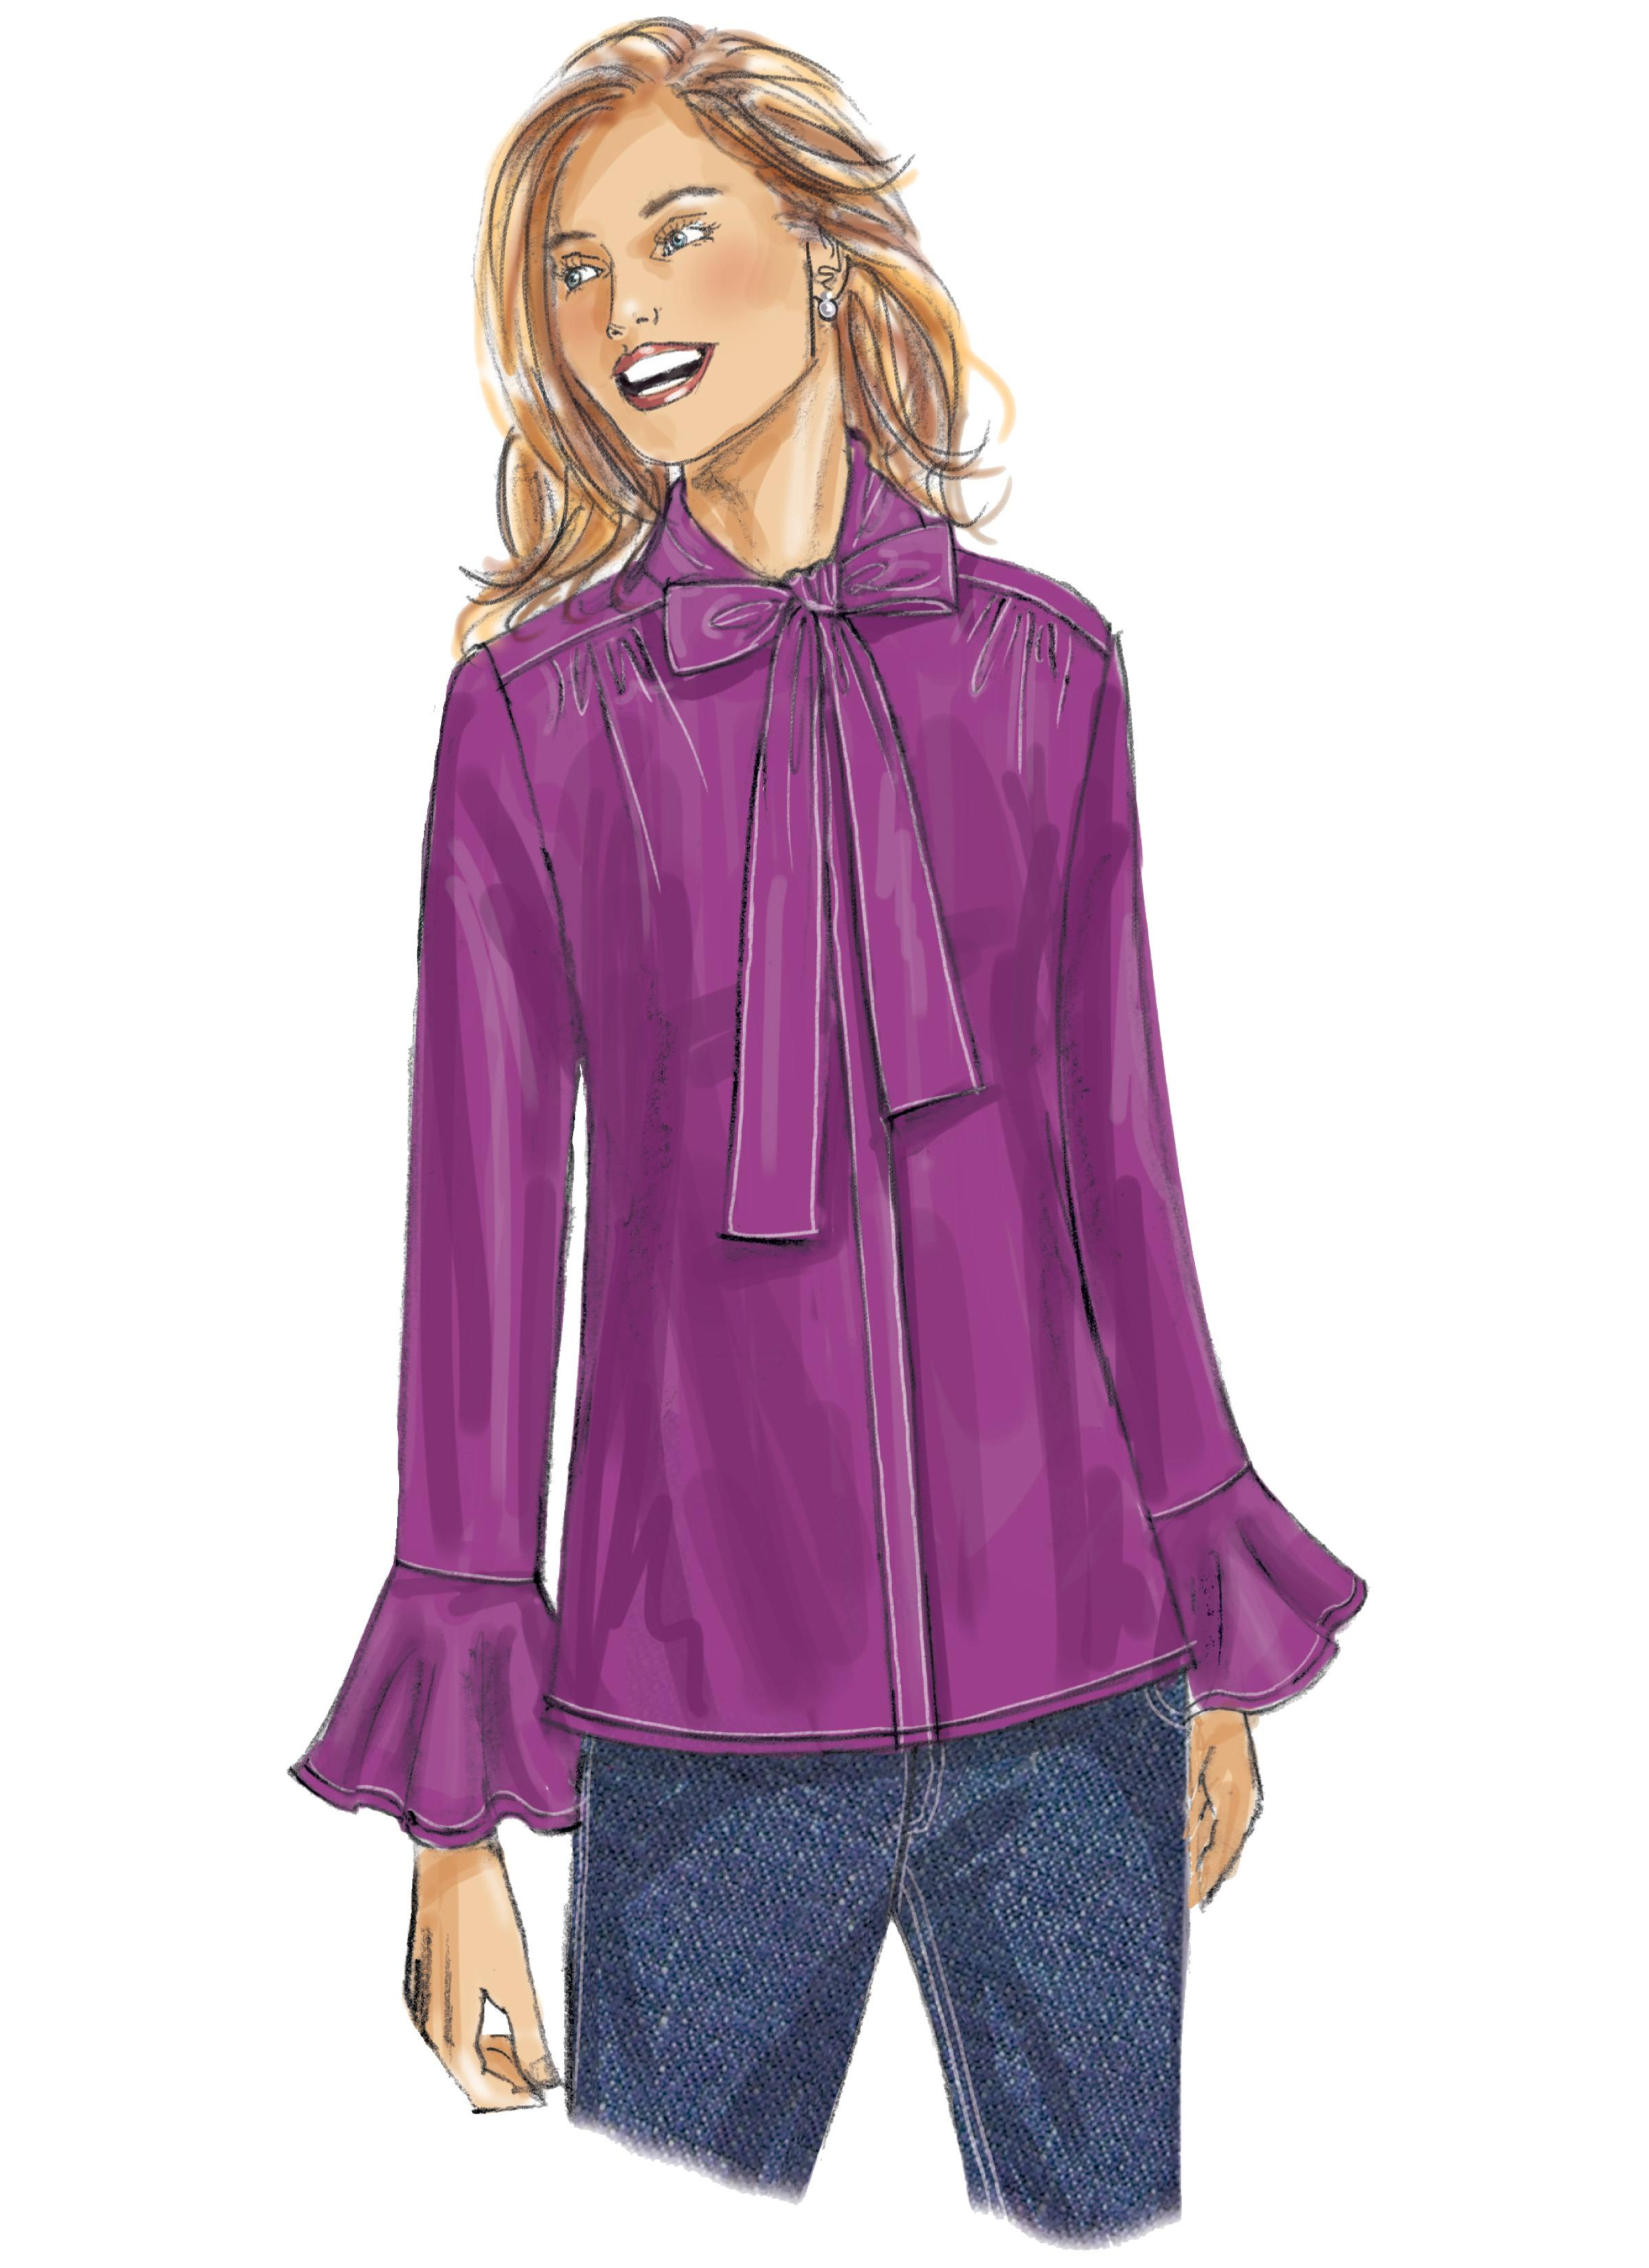 Butterick B6488 Misses' Tops with Neckline and Sleeve Variations